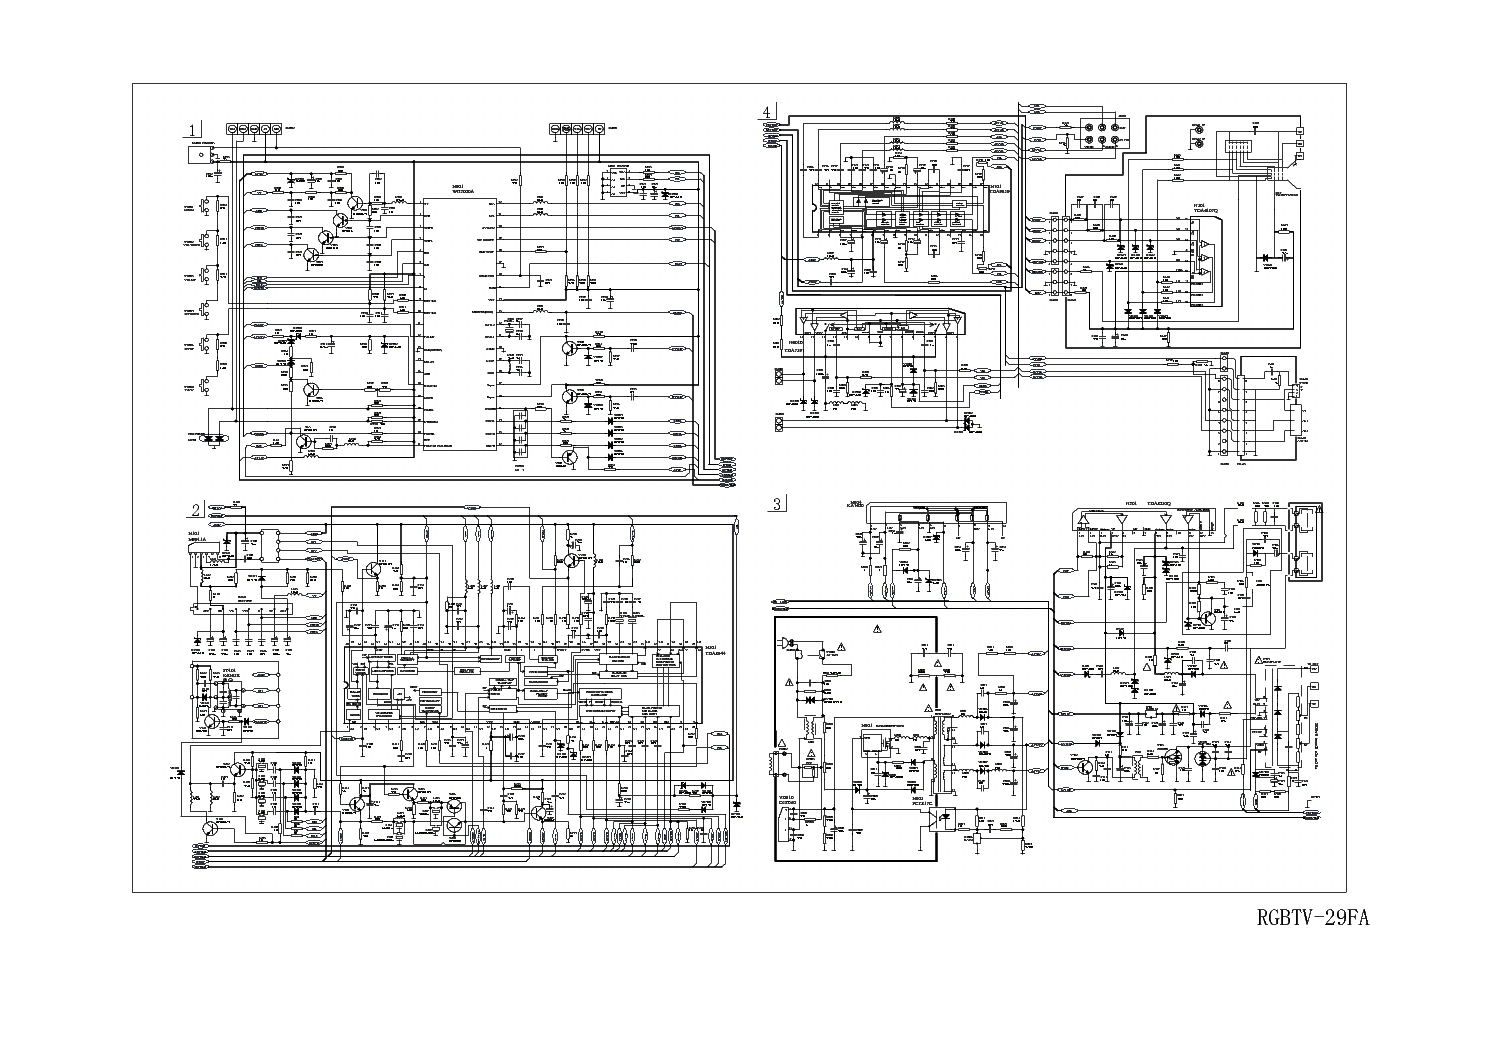 Free Download Sr Series Wiring Diagram Library Diagrams Weebly Schematic Haier Tv 29fa Circuit Service Manual Schematics Block Board